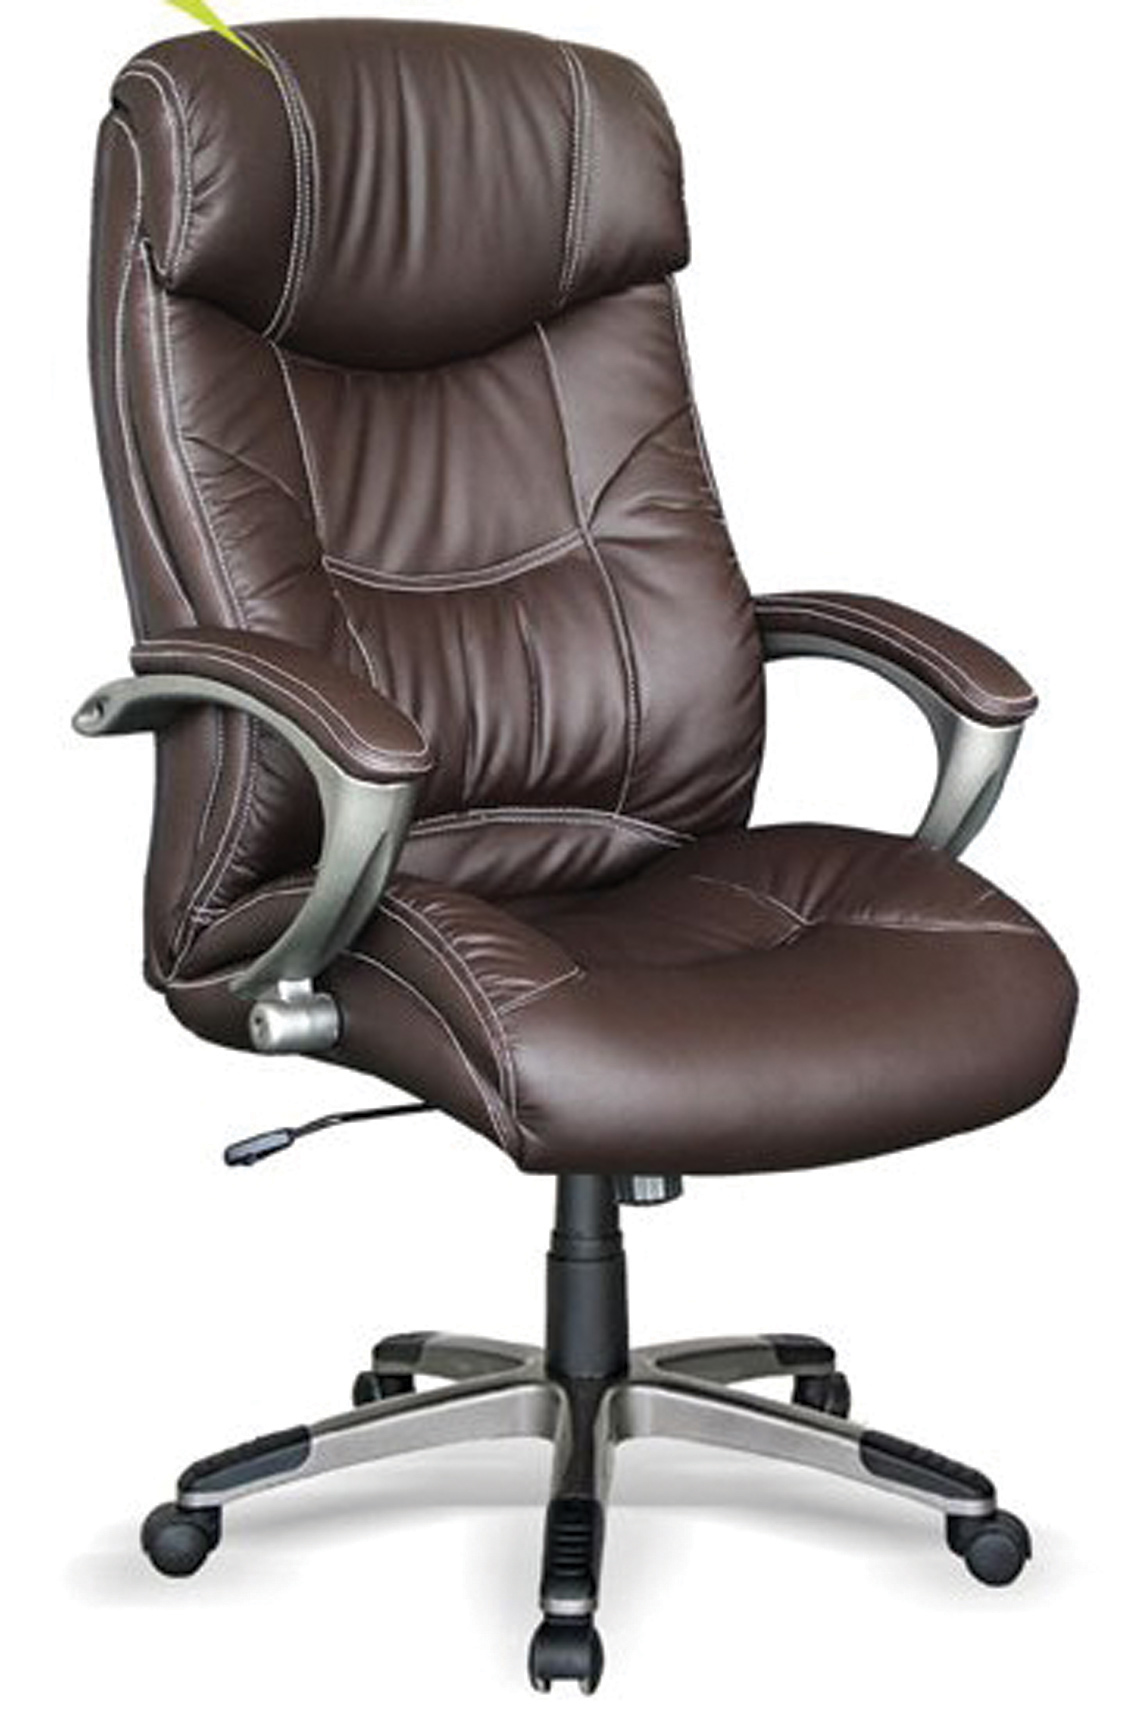 CP Fabio 1 Composite Leather High Back Office Chair